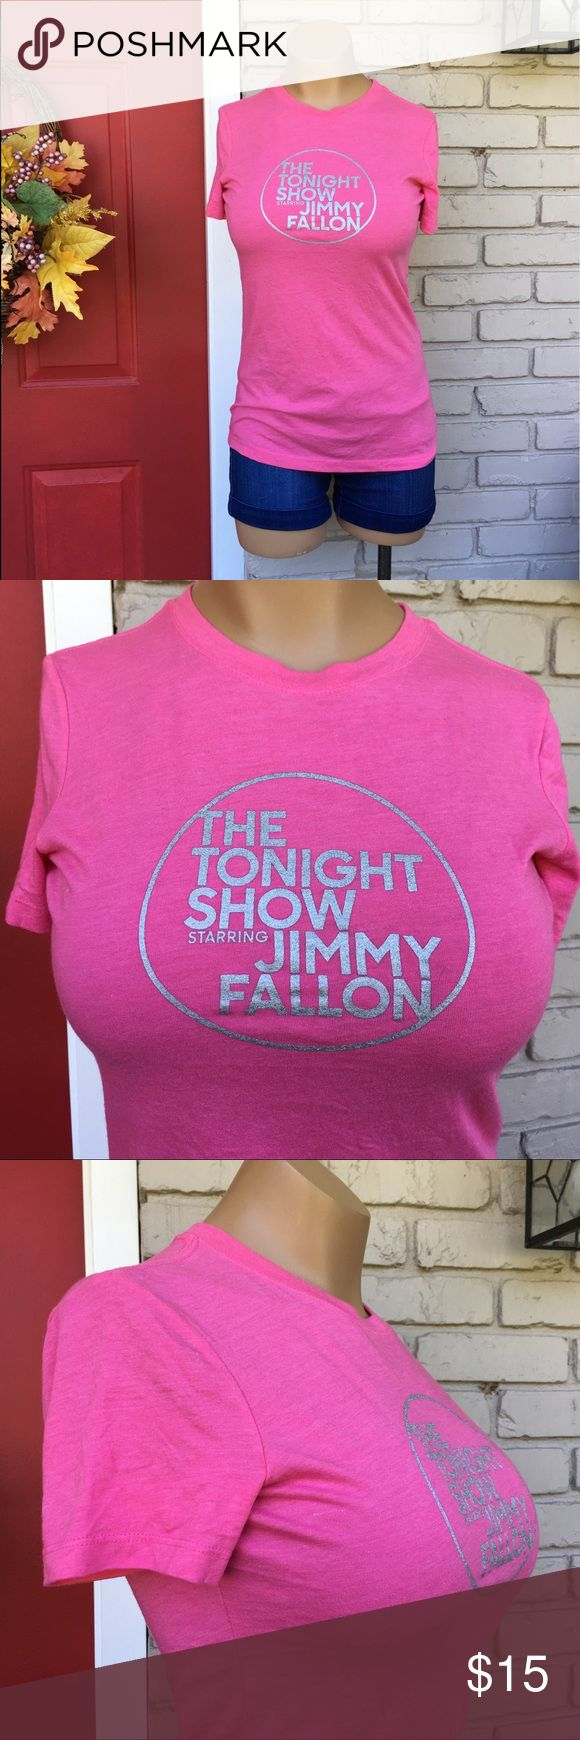 Jimmy Fallon Tonight Show pink tee New with tags. Hot pink and silver Jimmy Fallon tee from NBC studios. NBC Studios Tops